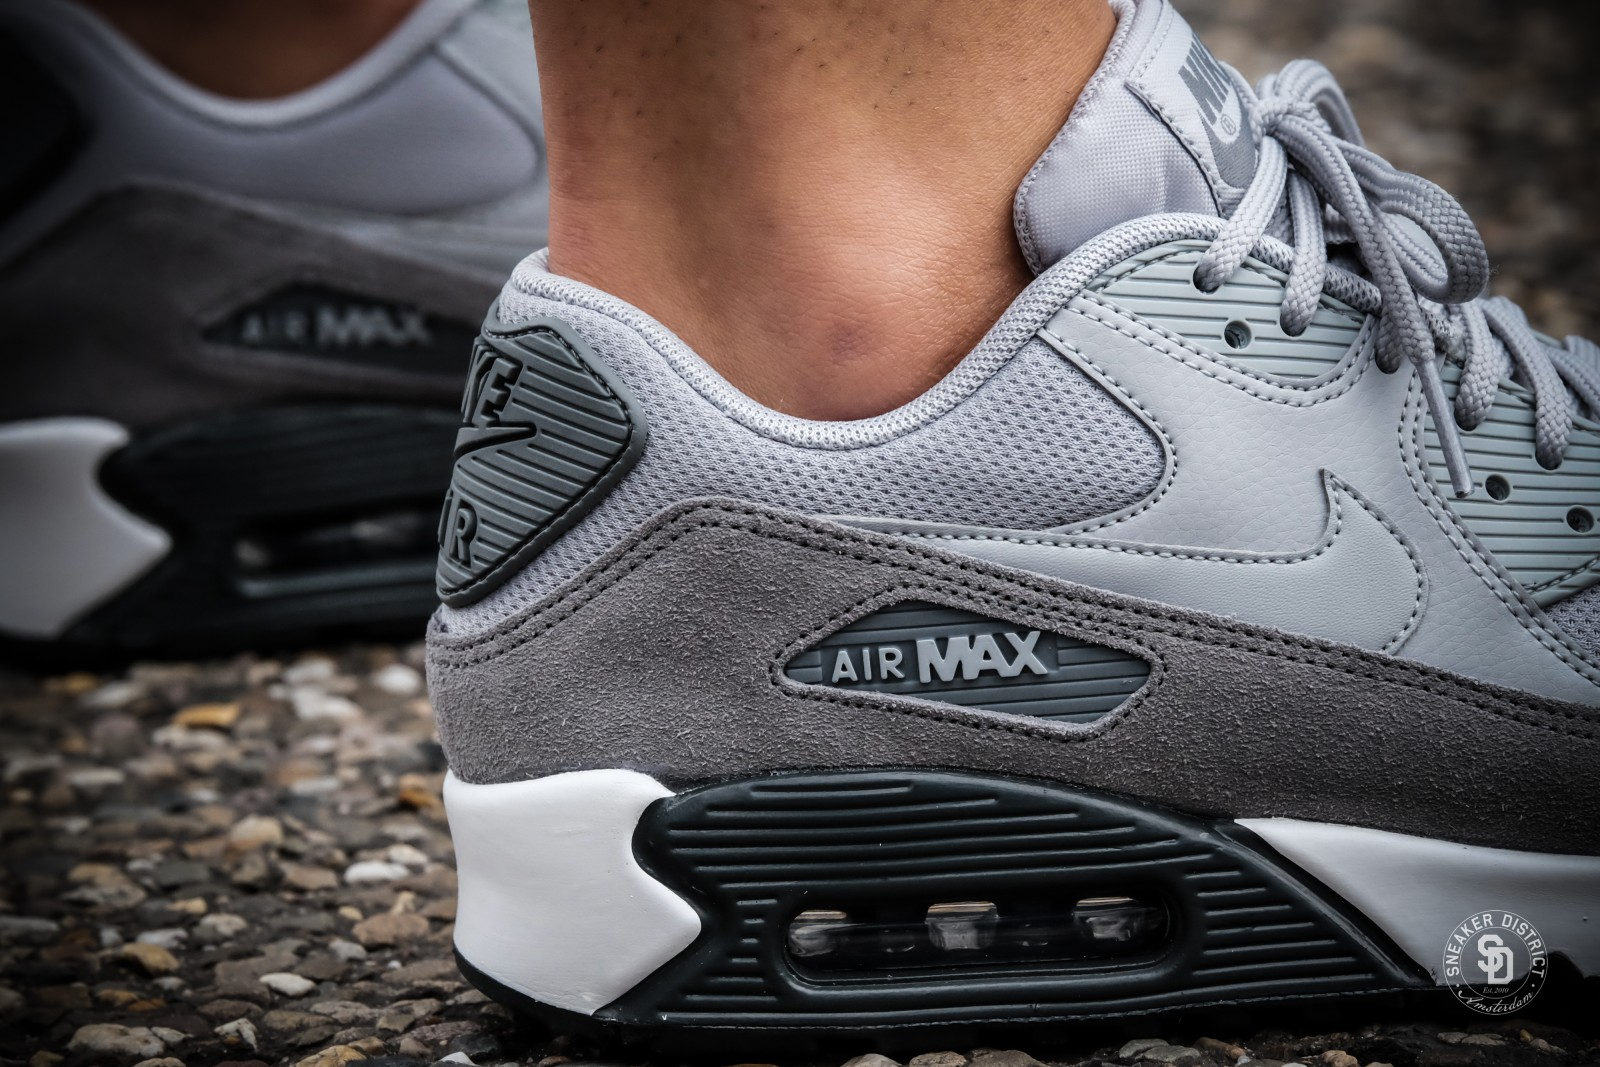 Nike Women's Air Max 90 Cool Grey/Anthracite-White | Dames sneakers | Sneaker District